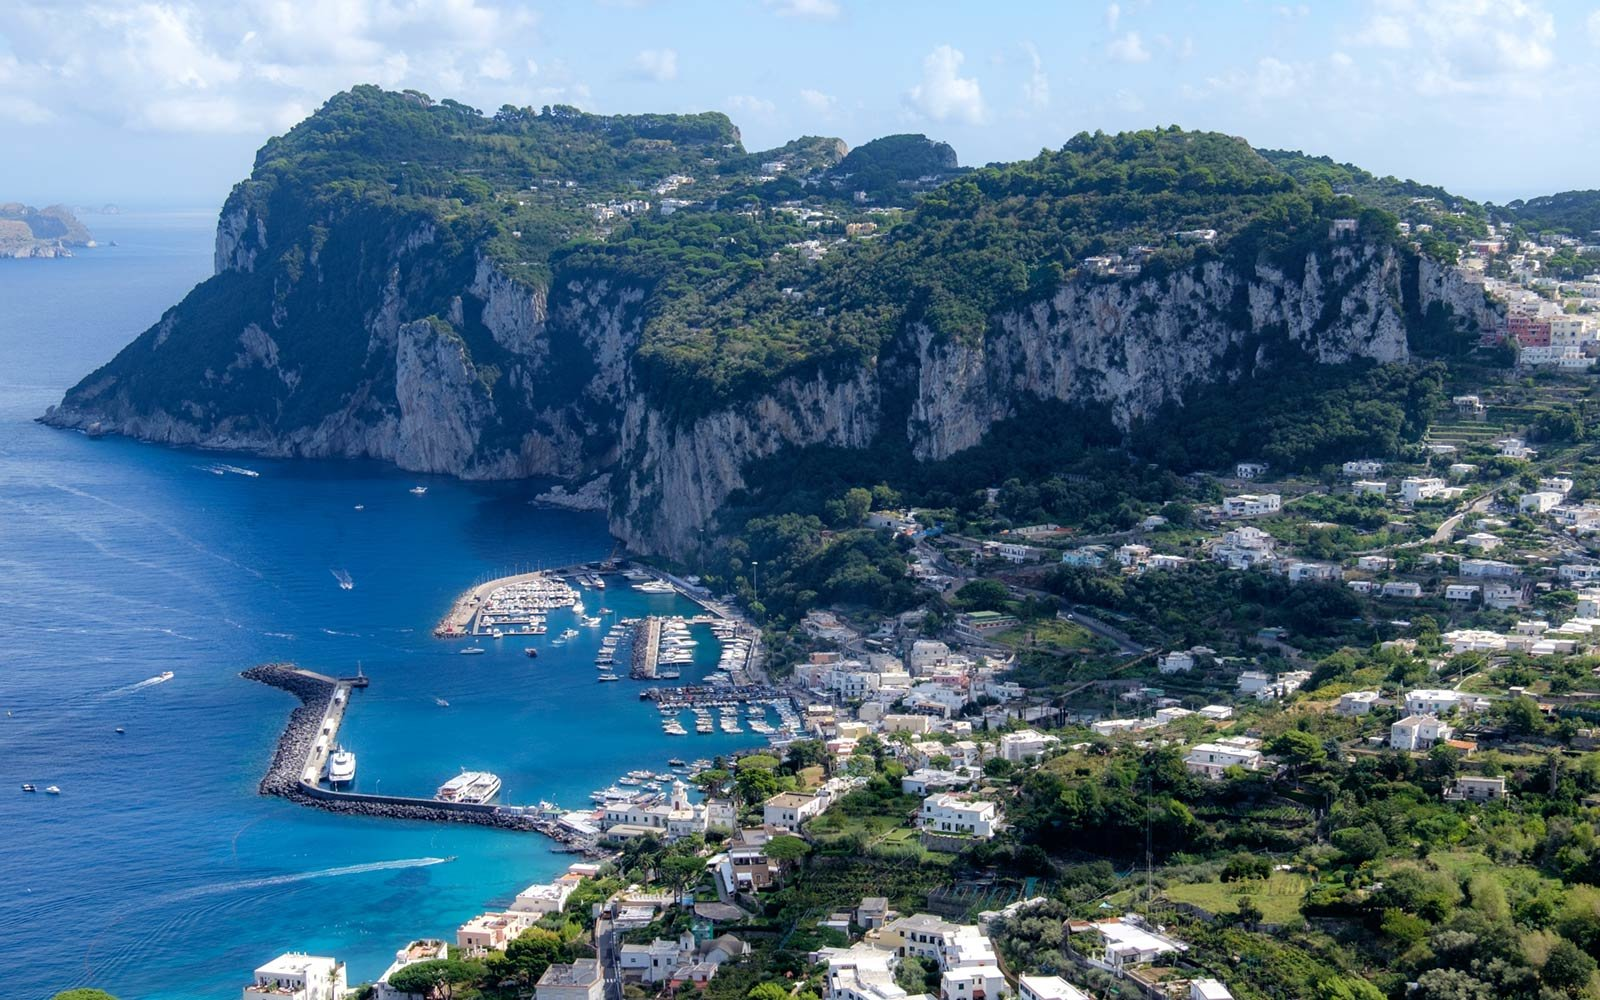 Mayor of Capri Says the Island Could 'Explode' From Too ...